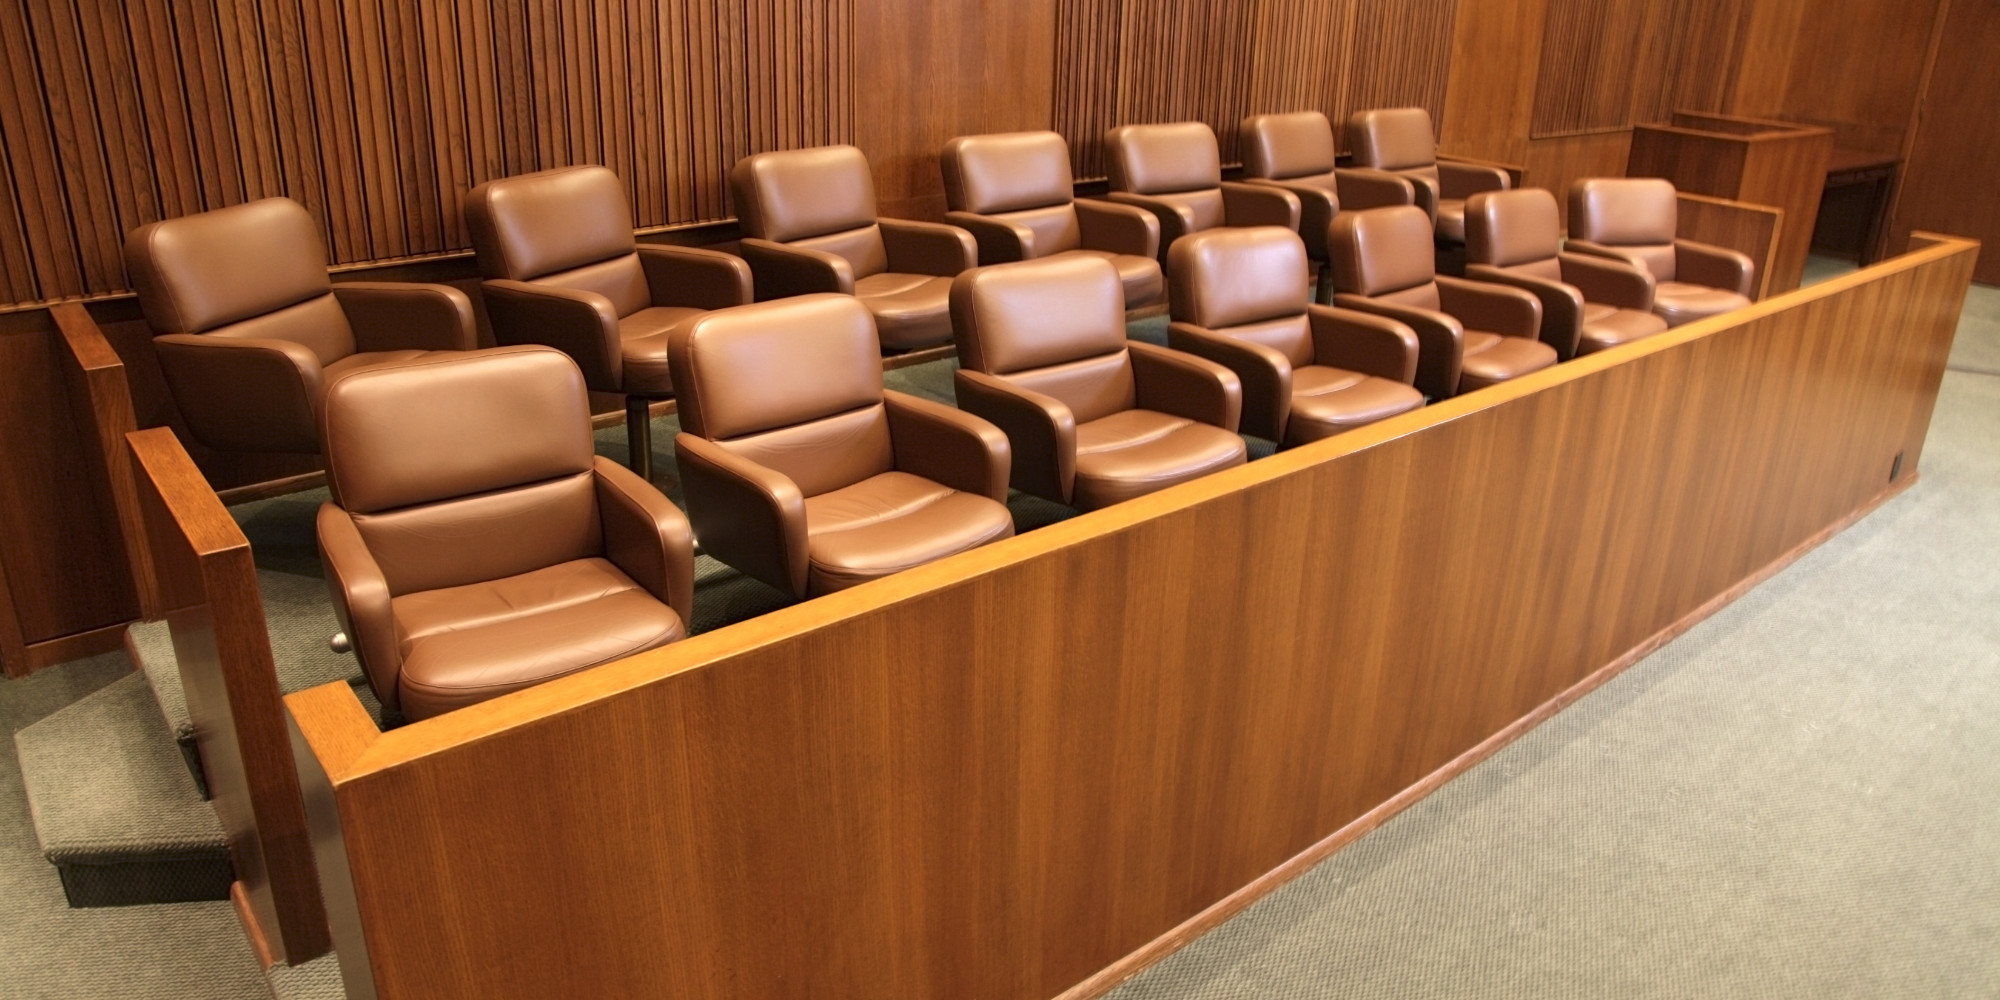 can fmris determine if a defendant is lying Justia - california criminal jury instructions (calcrim) (2017) 521 murder: degrees - free legal information - laws, blogs, legal services and more.